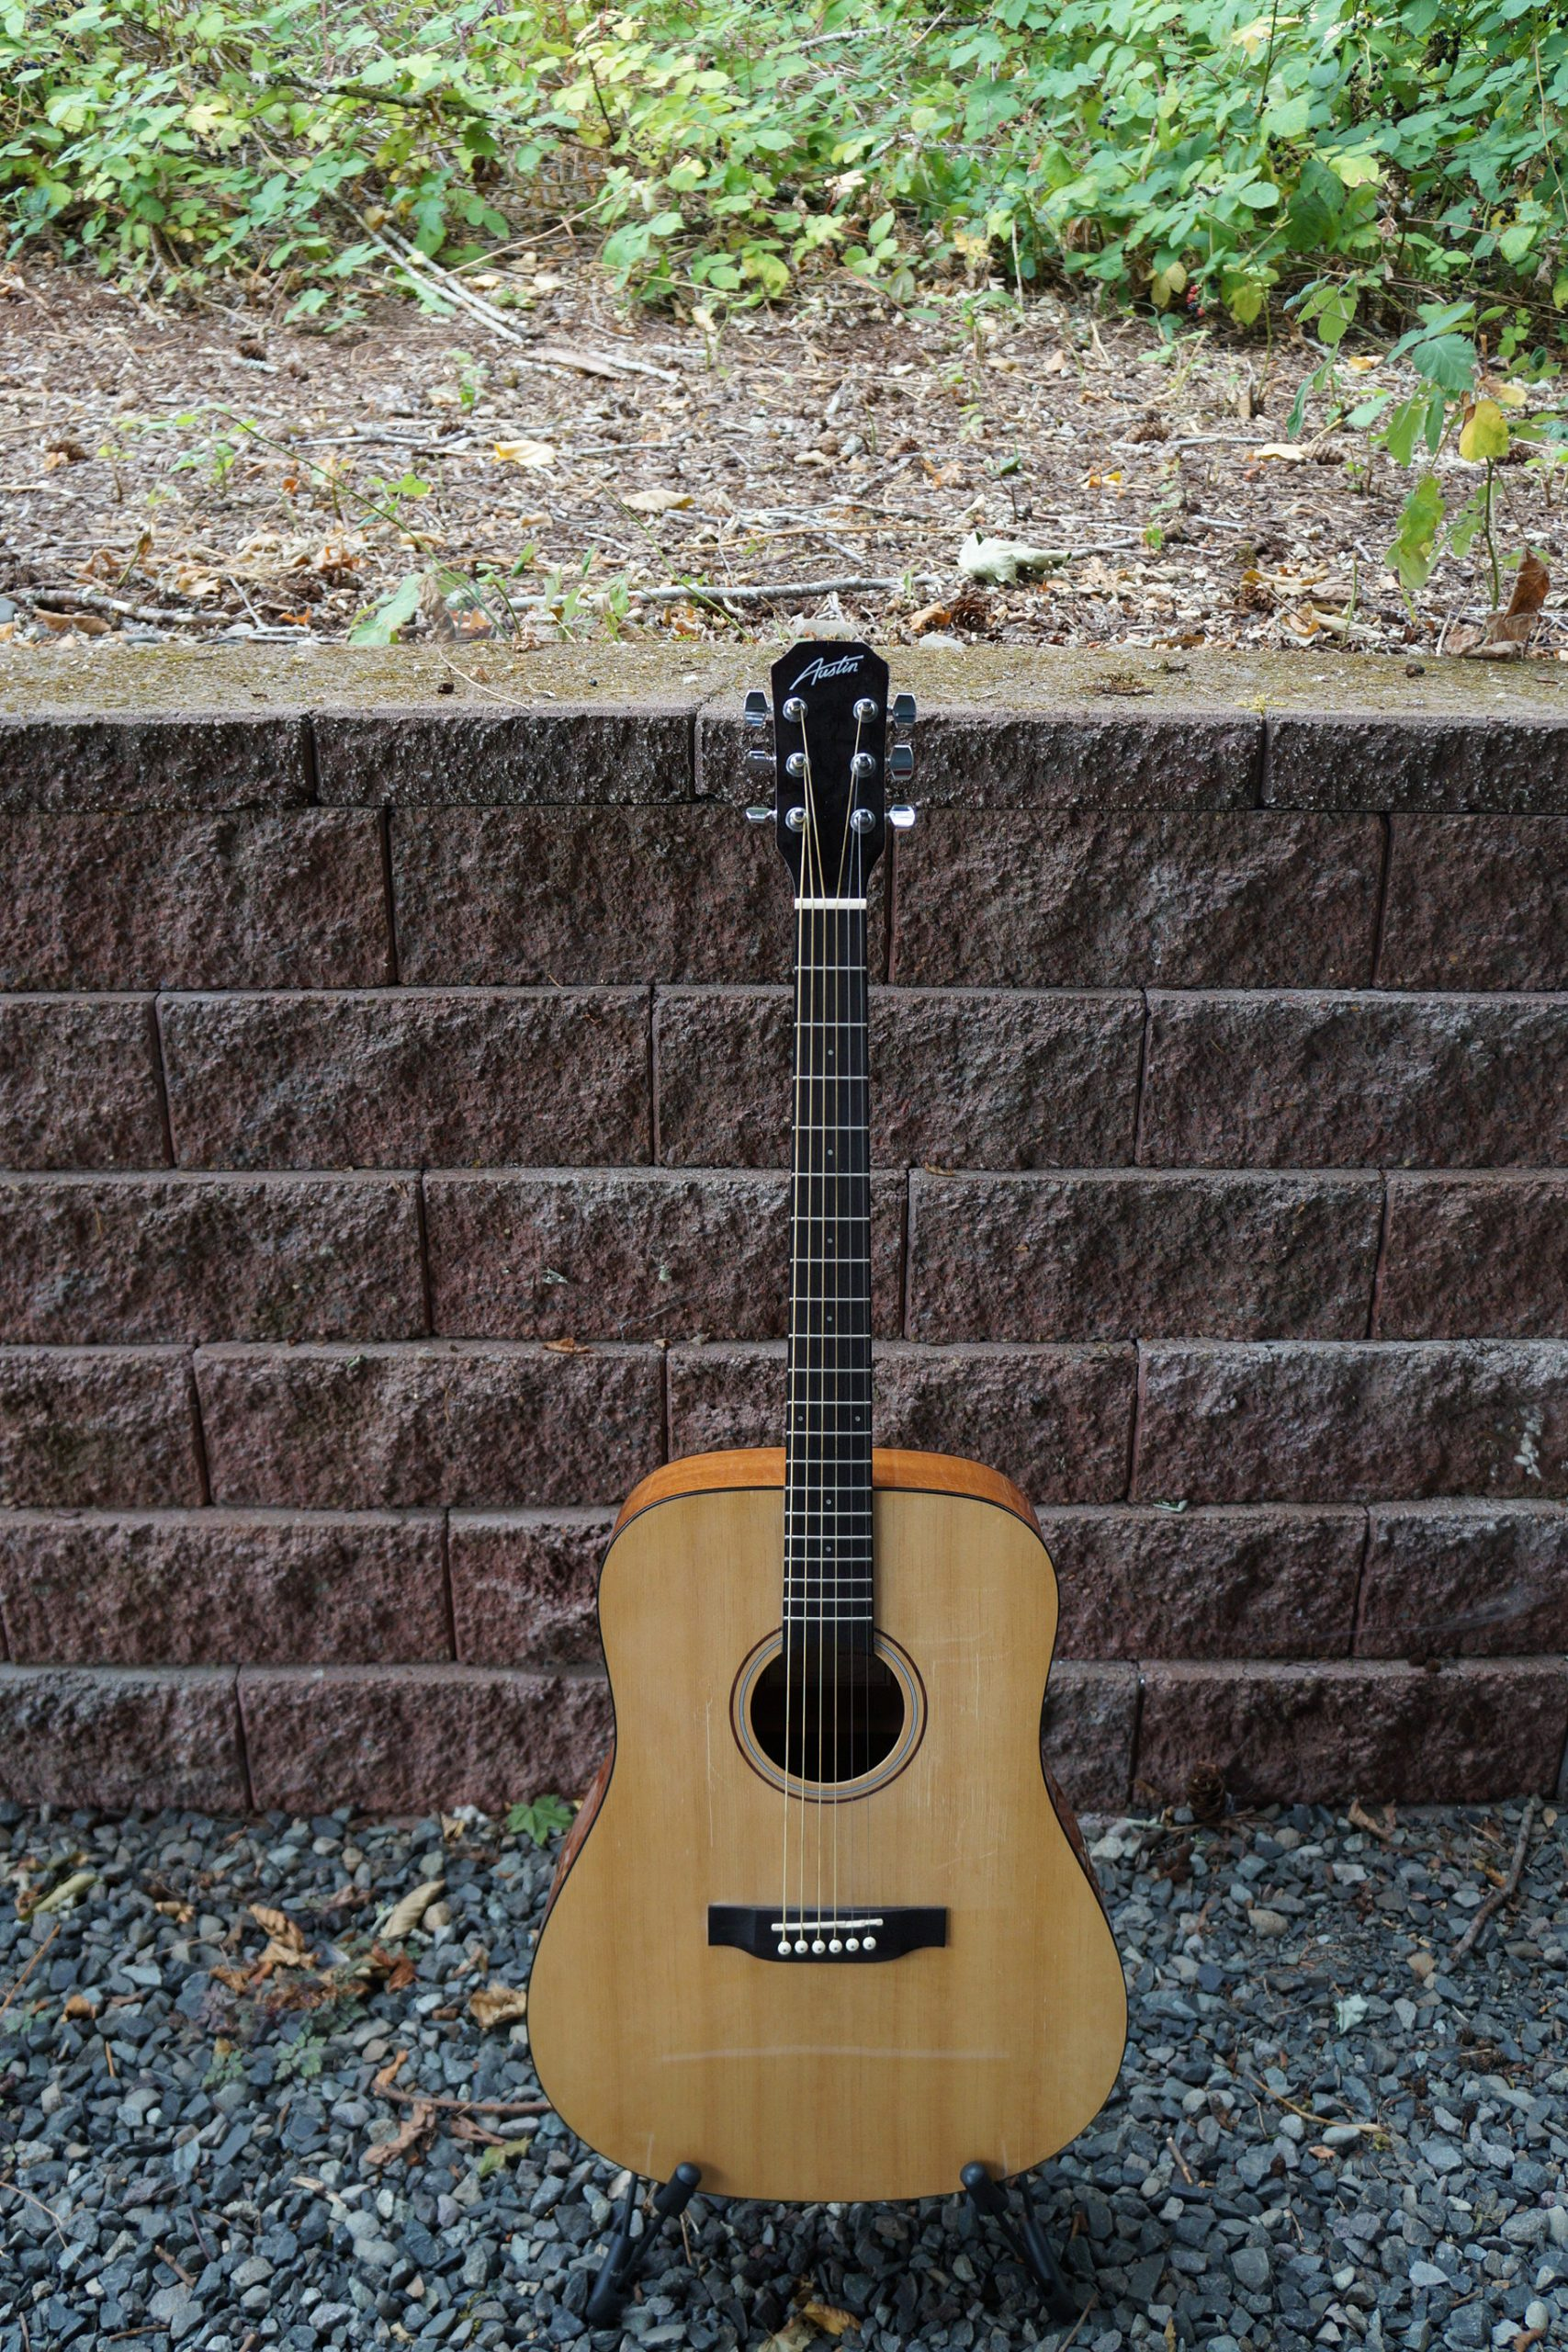 Austin AA25D Acoustic Dreadnought Guitar, Natural, with Finish Imperfections.